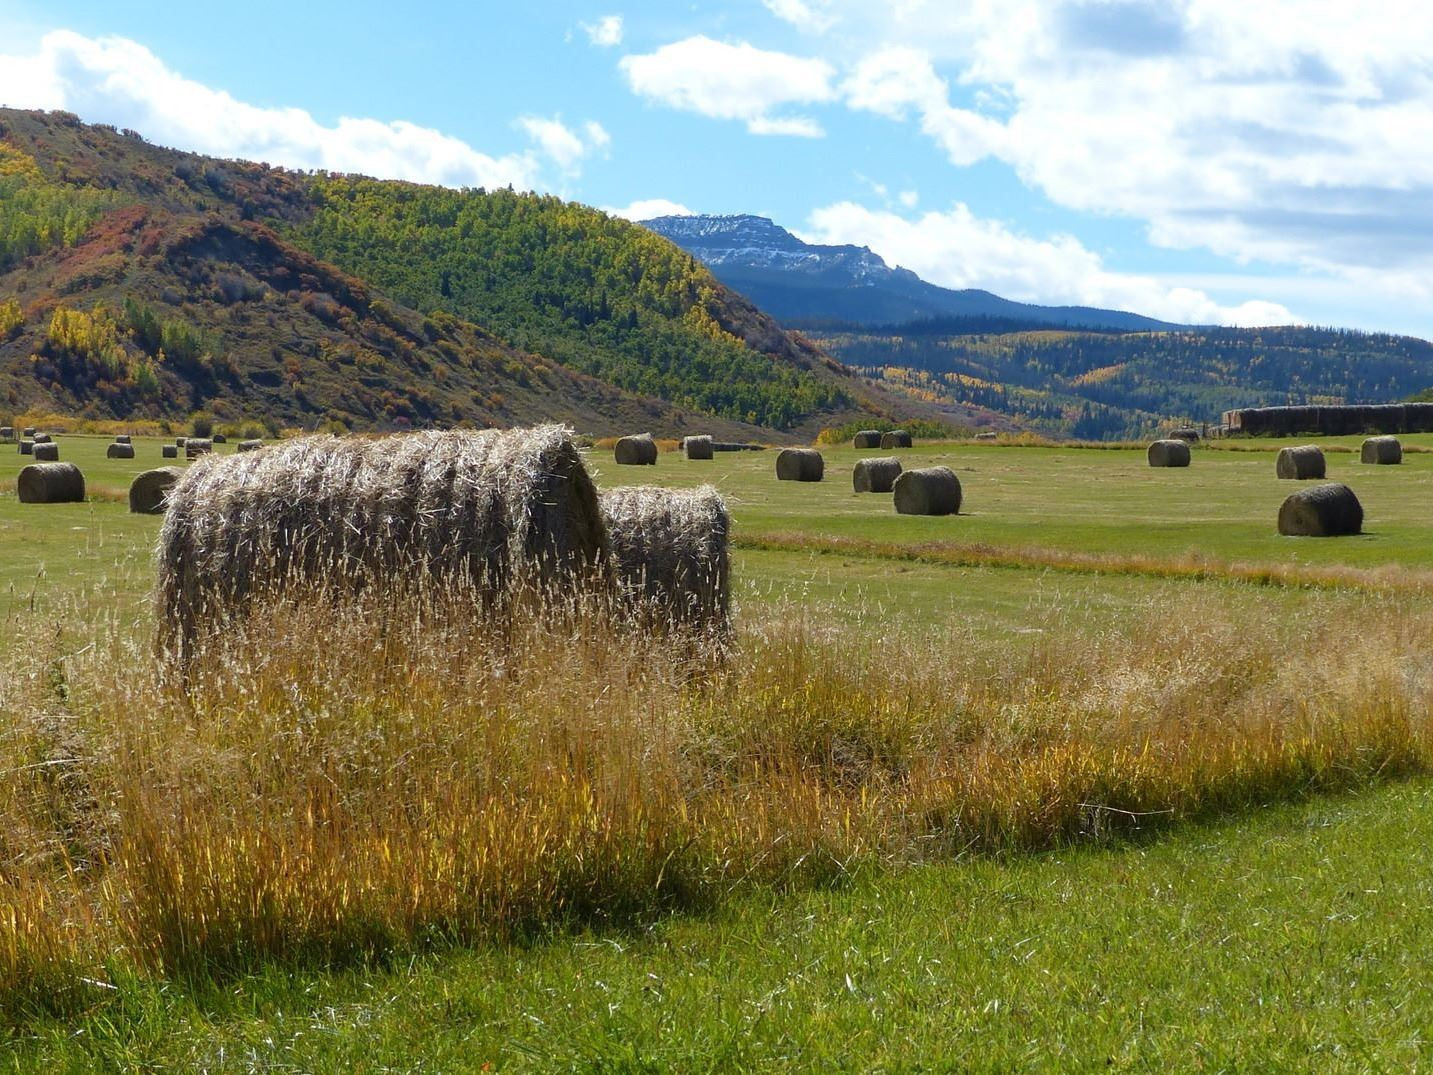 Hay Bales on green pasture with mountain in the background